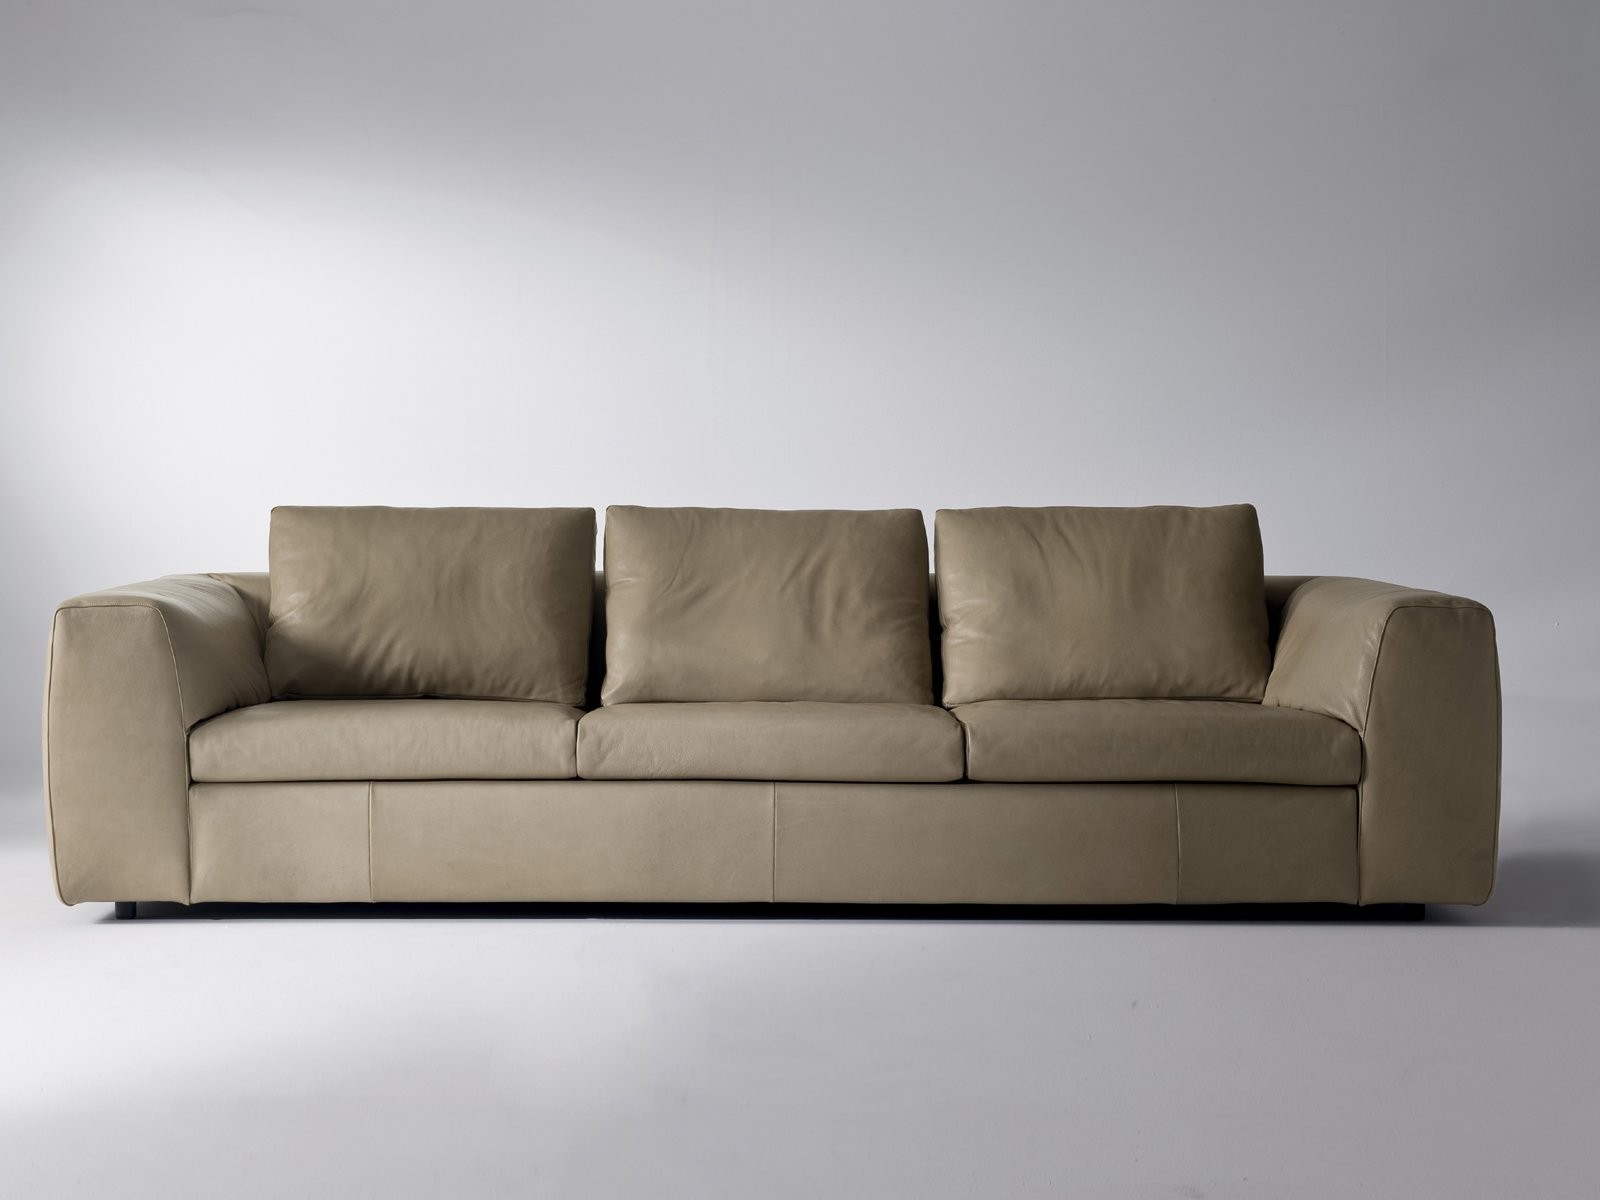 glac 3 seater sofa by i 4 mariani design mauro lipparini. Black Bedroom Furniture Sets. Home Design Ideas